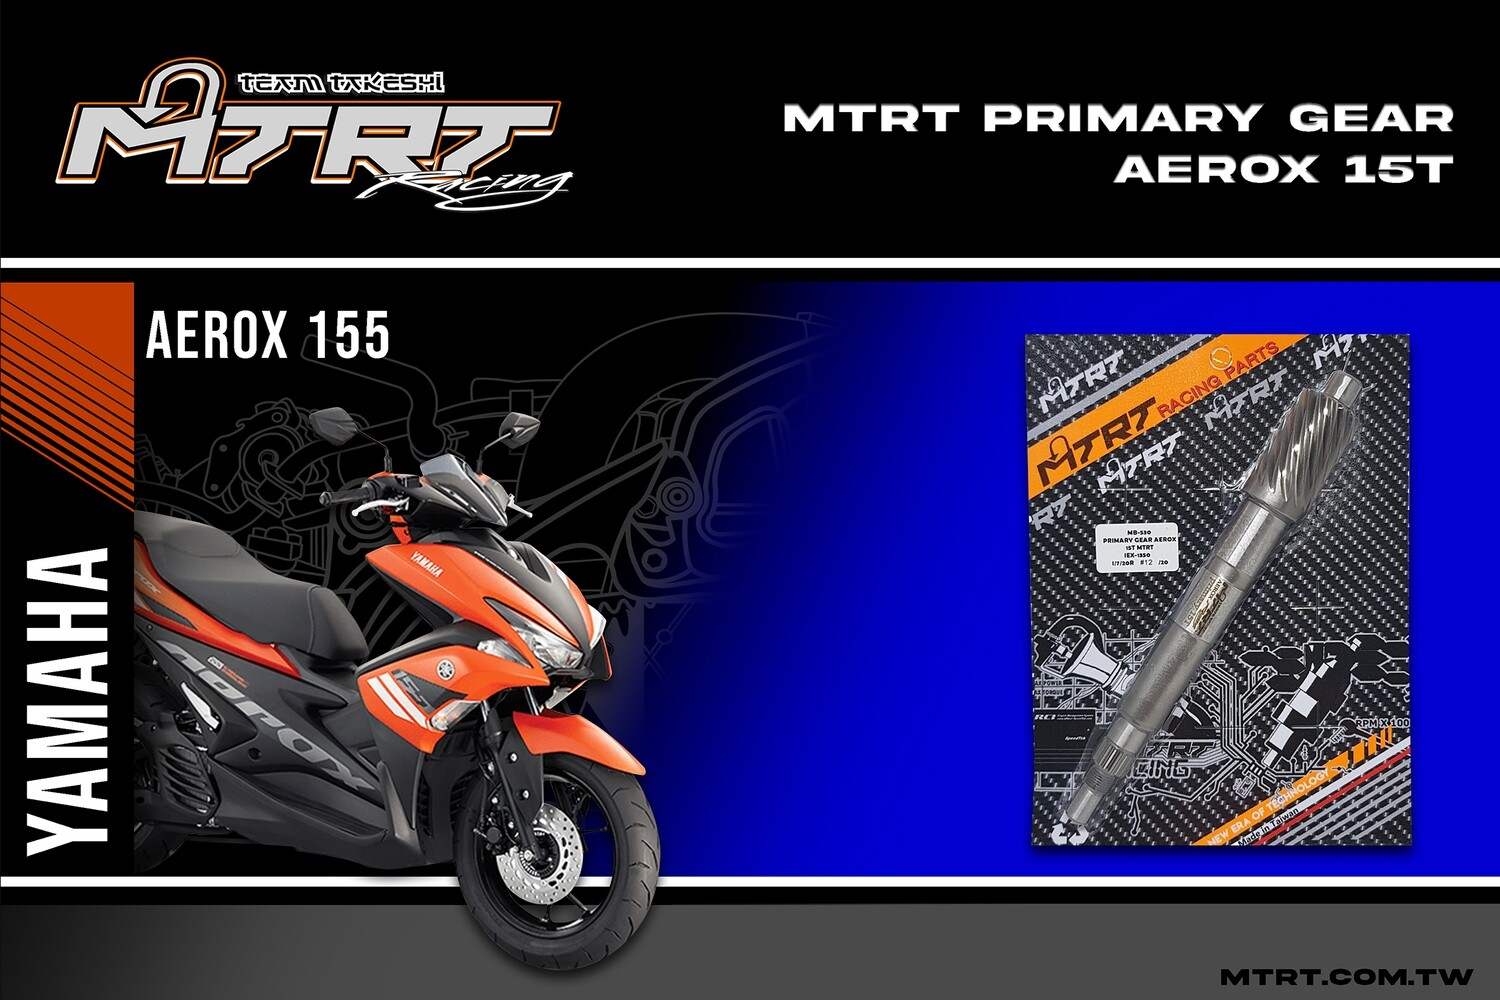 MTRT PRIMARY GEAR AEROX155 / NMAX 15T FOR 56T